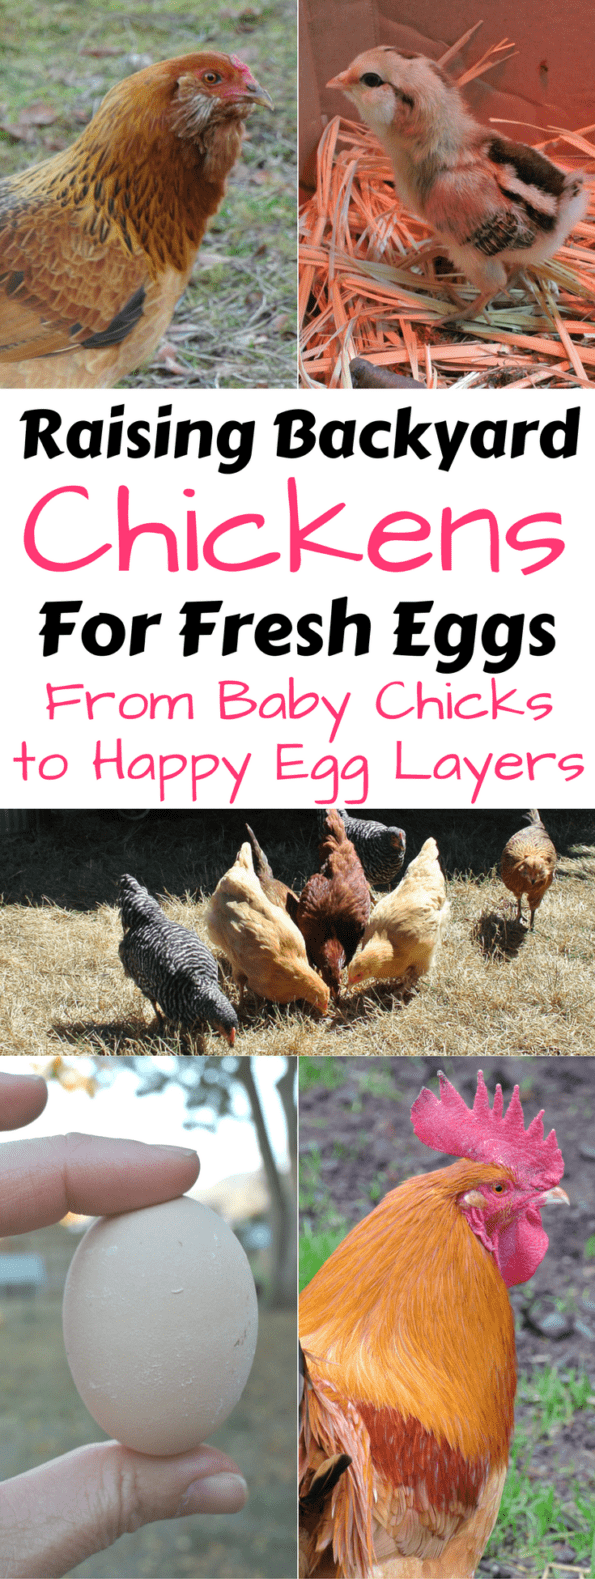 Collage of backyard chickens and an egg with text overlay.